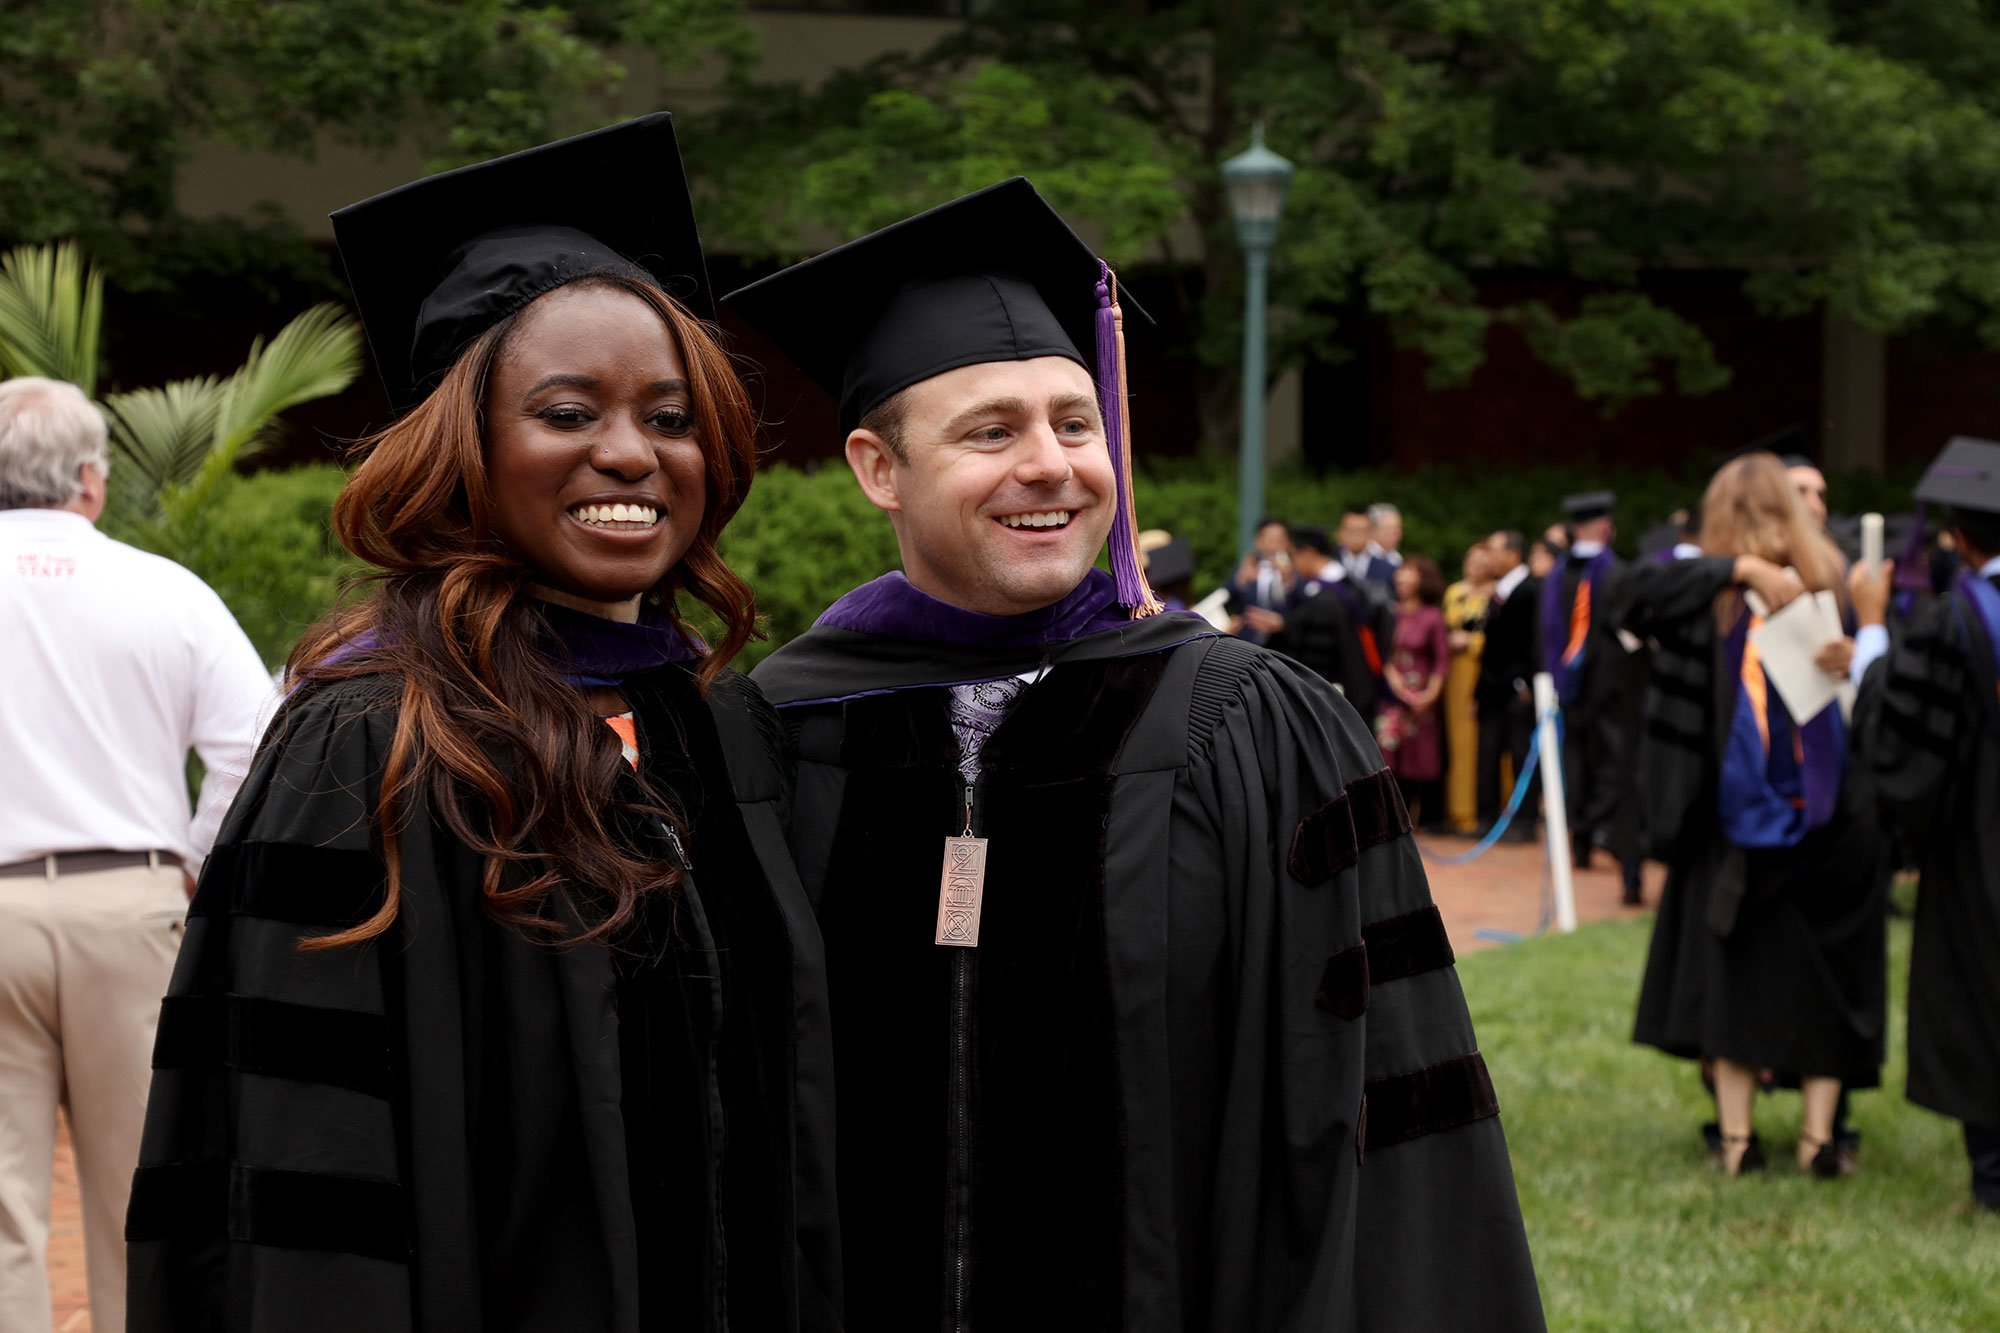 Photos from #UVALawGrad are available now on Facebook (https://t.co/JNN19pgVOm) and Instagram https://t.co/YOr6wxVTxZ https://t.co/qdCcPTtptb